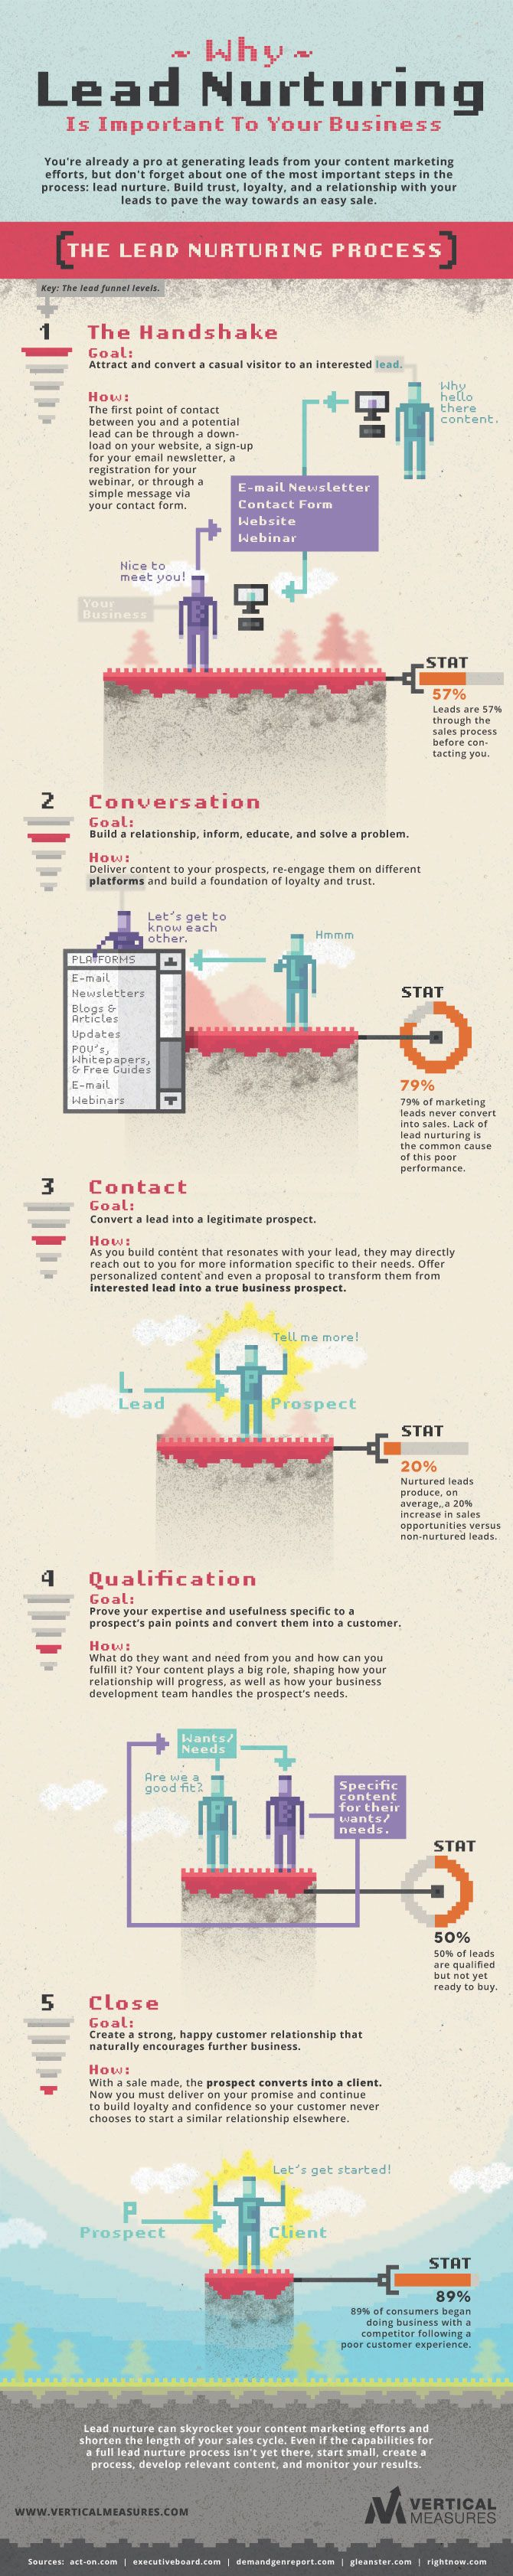 Creating a Content Marketing Lead Nurturing Process - #infographic #marketing